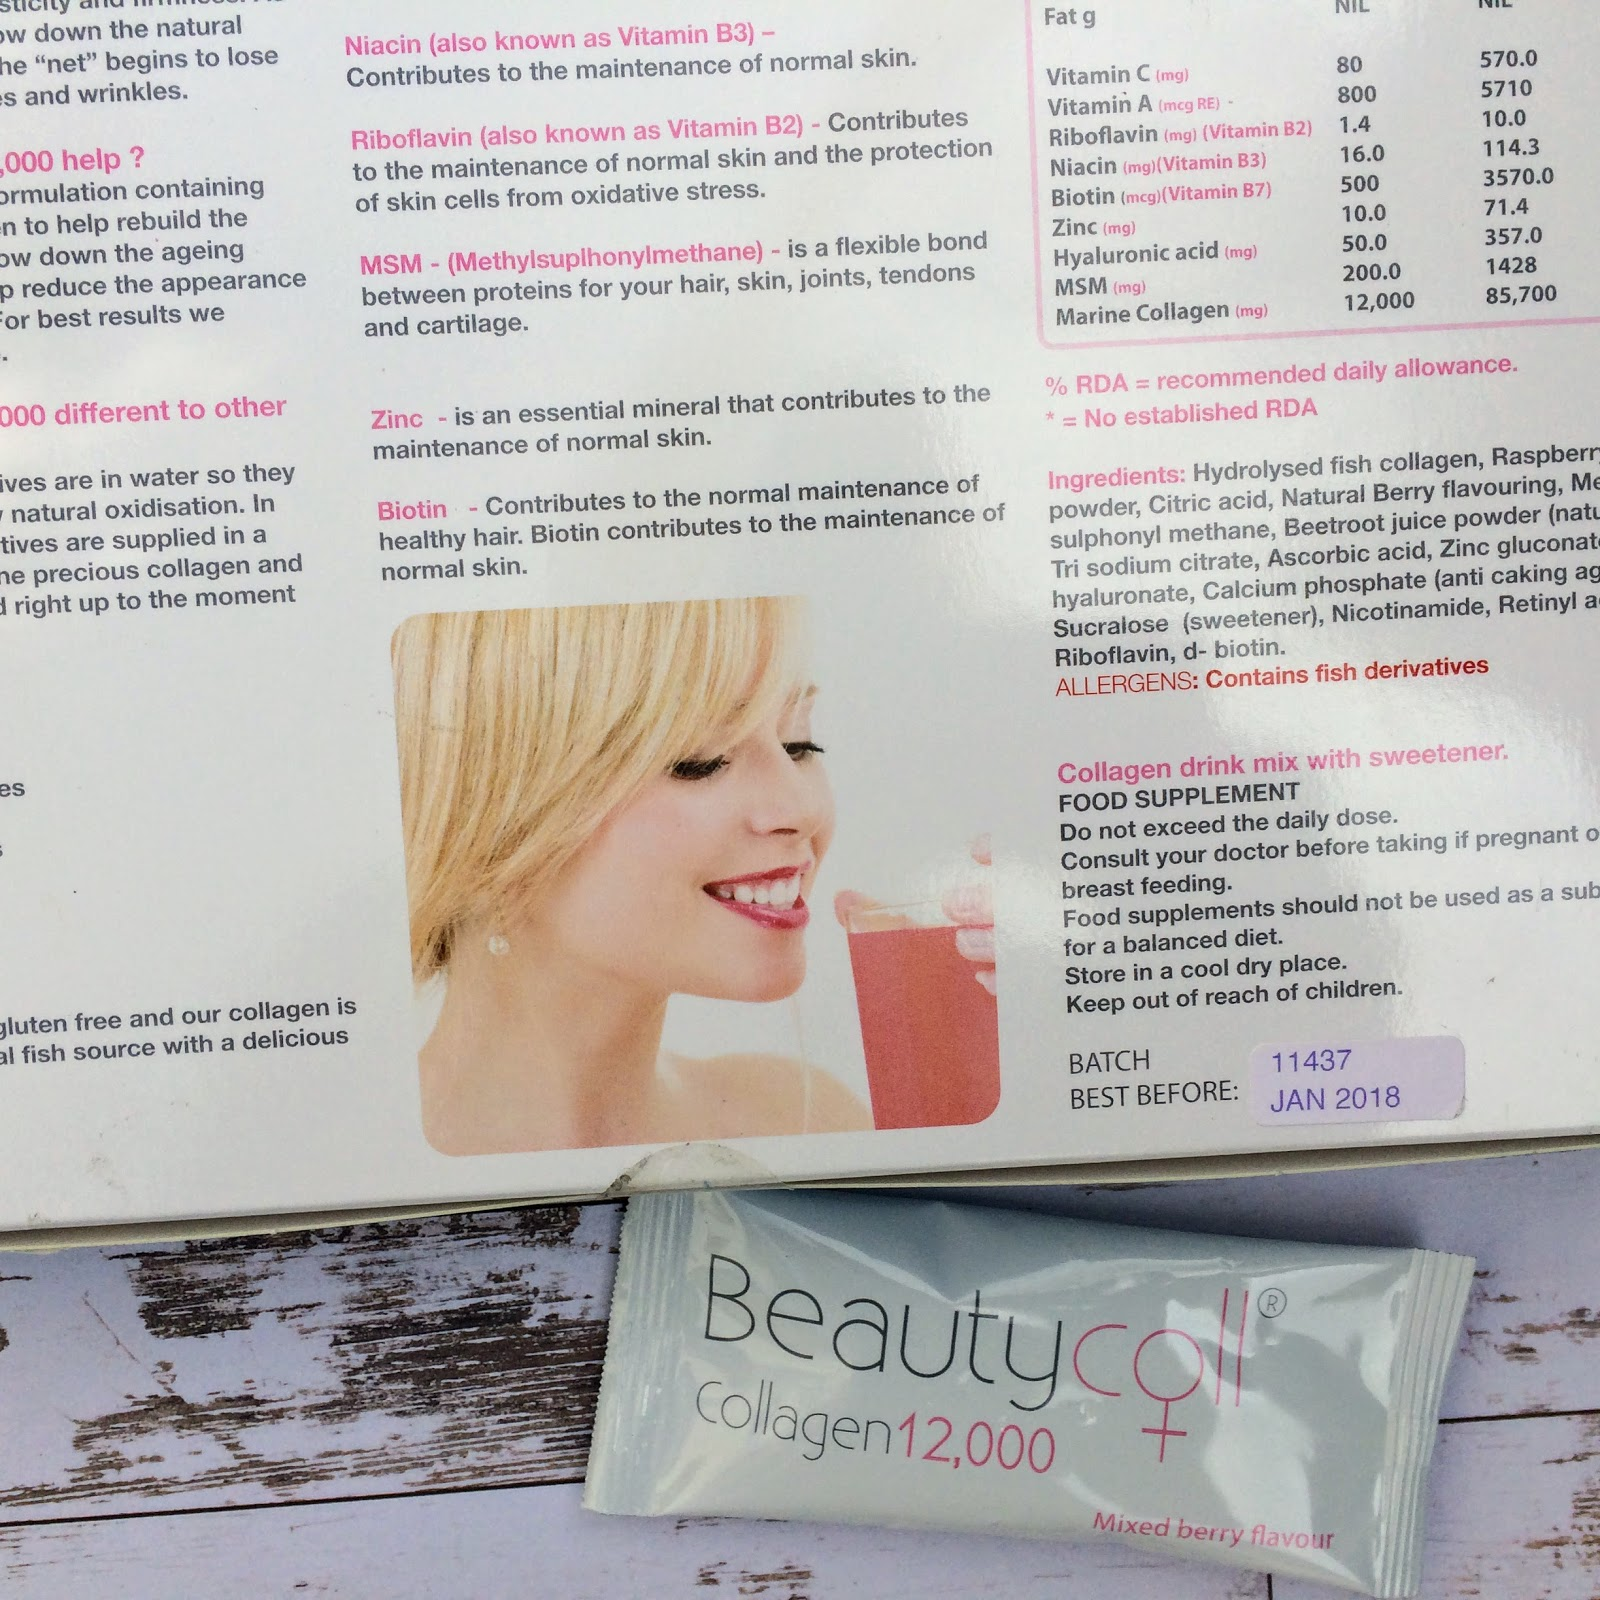 Beautycoll collagen drinks back of box information